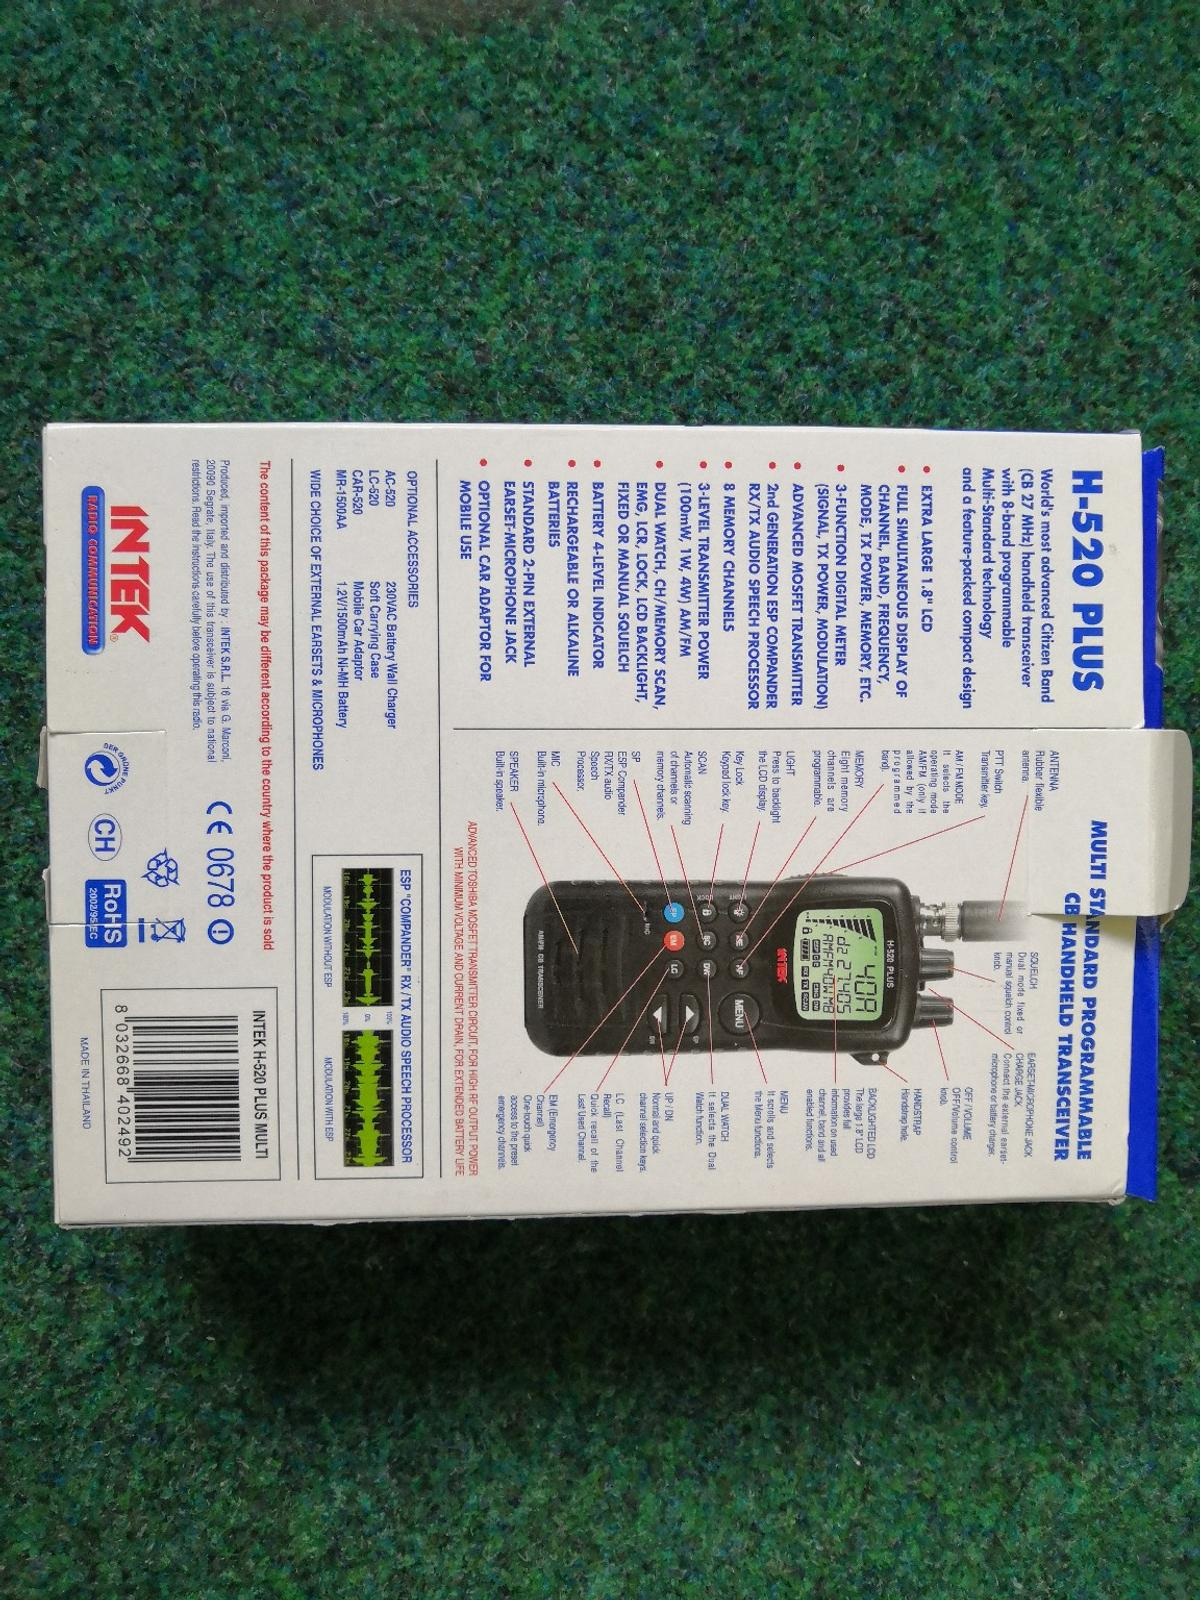 Intel h520 plus cb radio in CF35 Pencoed for £80 00 for sale - Shpock